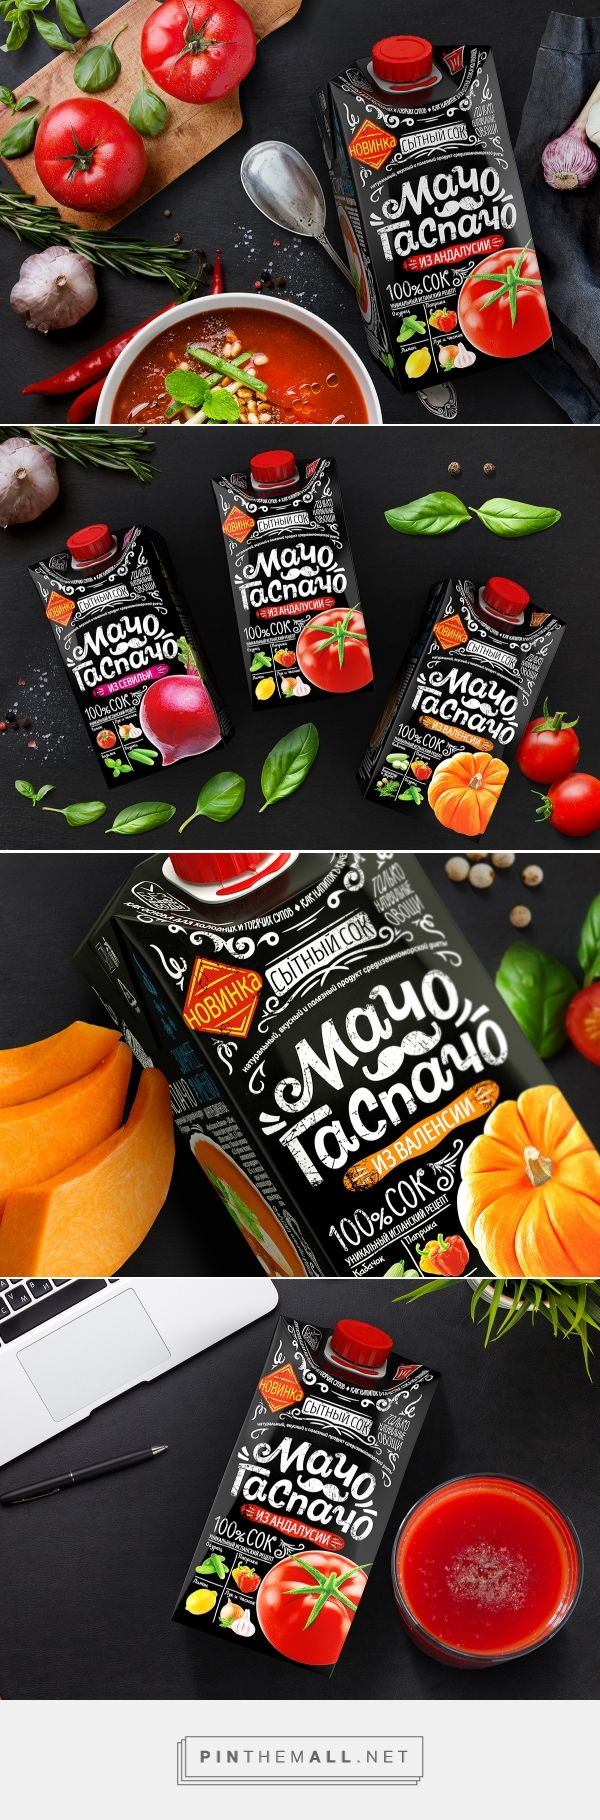 Мачо Гаспачо vegetable soups by DDVB. Source: Behance. Pin curated by #SFields99 #packaging #design #inspiration #ideas #innovation #branding #soup #vegetables